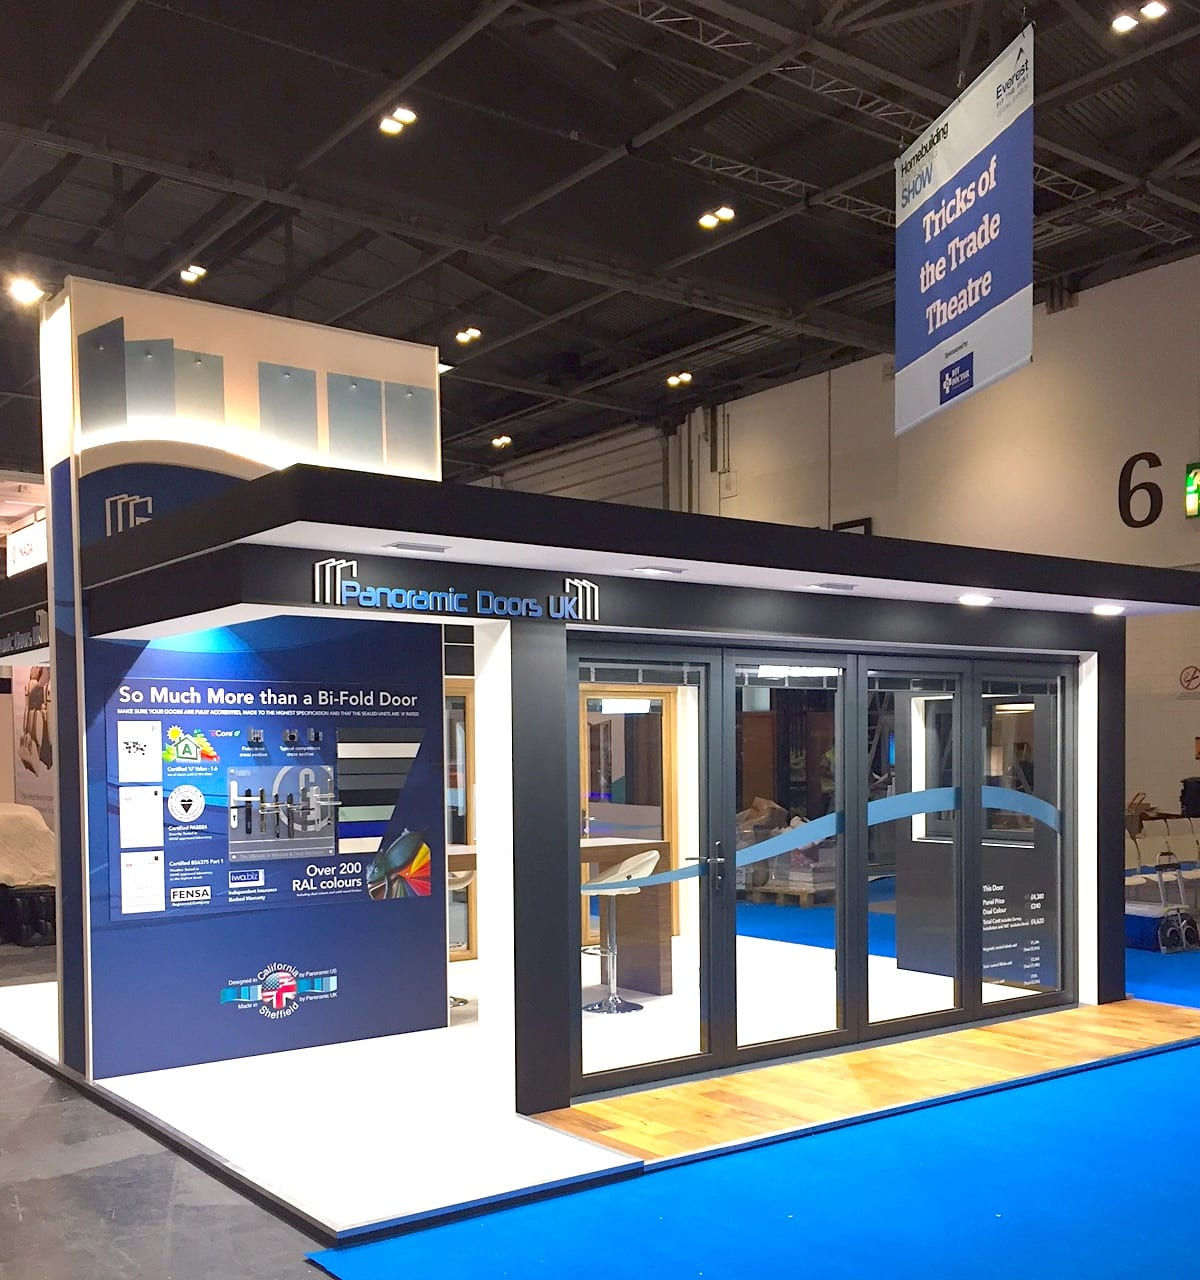 the hbr show 2017 come see us panoramic doors uk. Black Bedroom Furniture Sets. Home Design Ideas